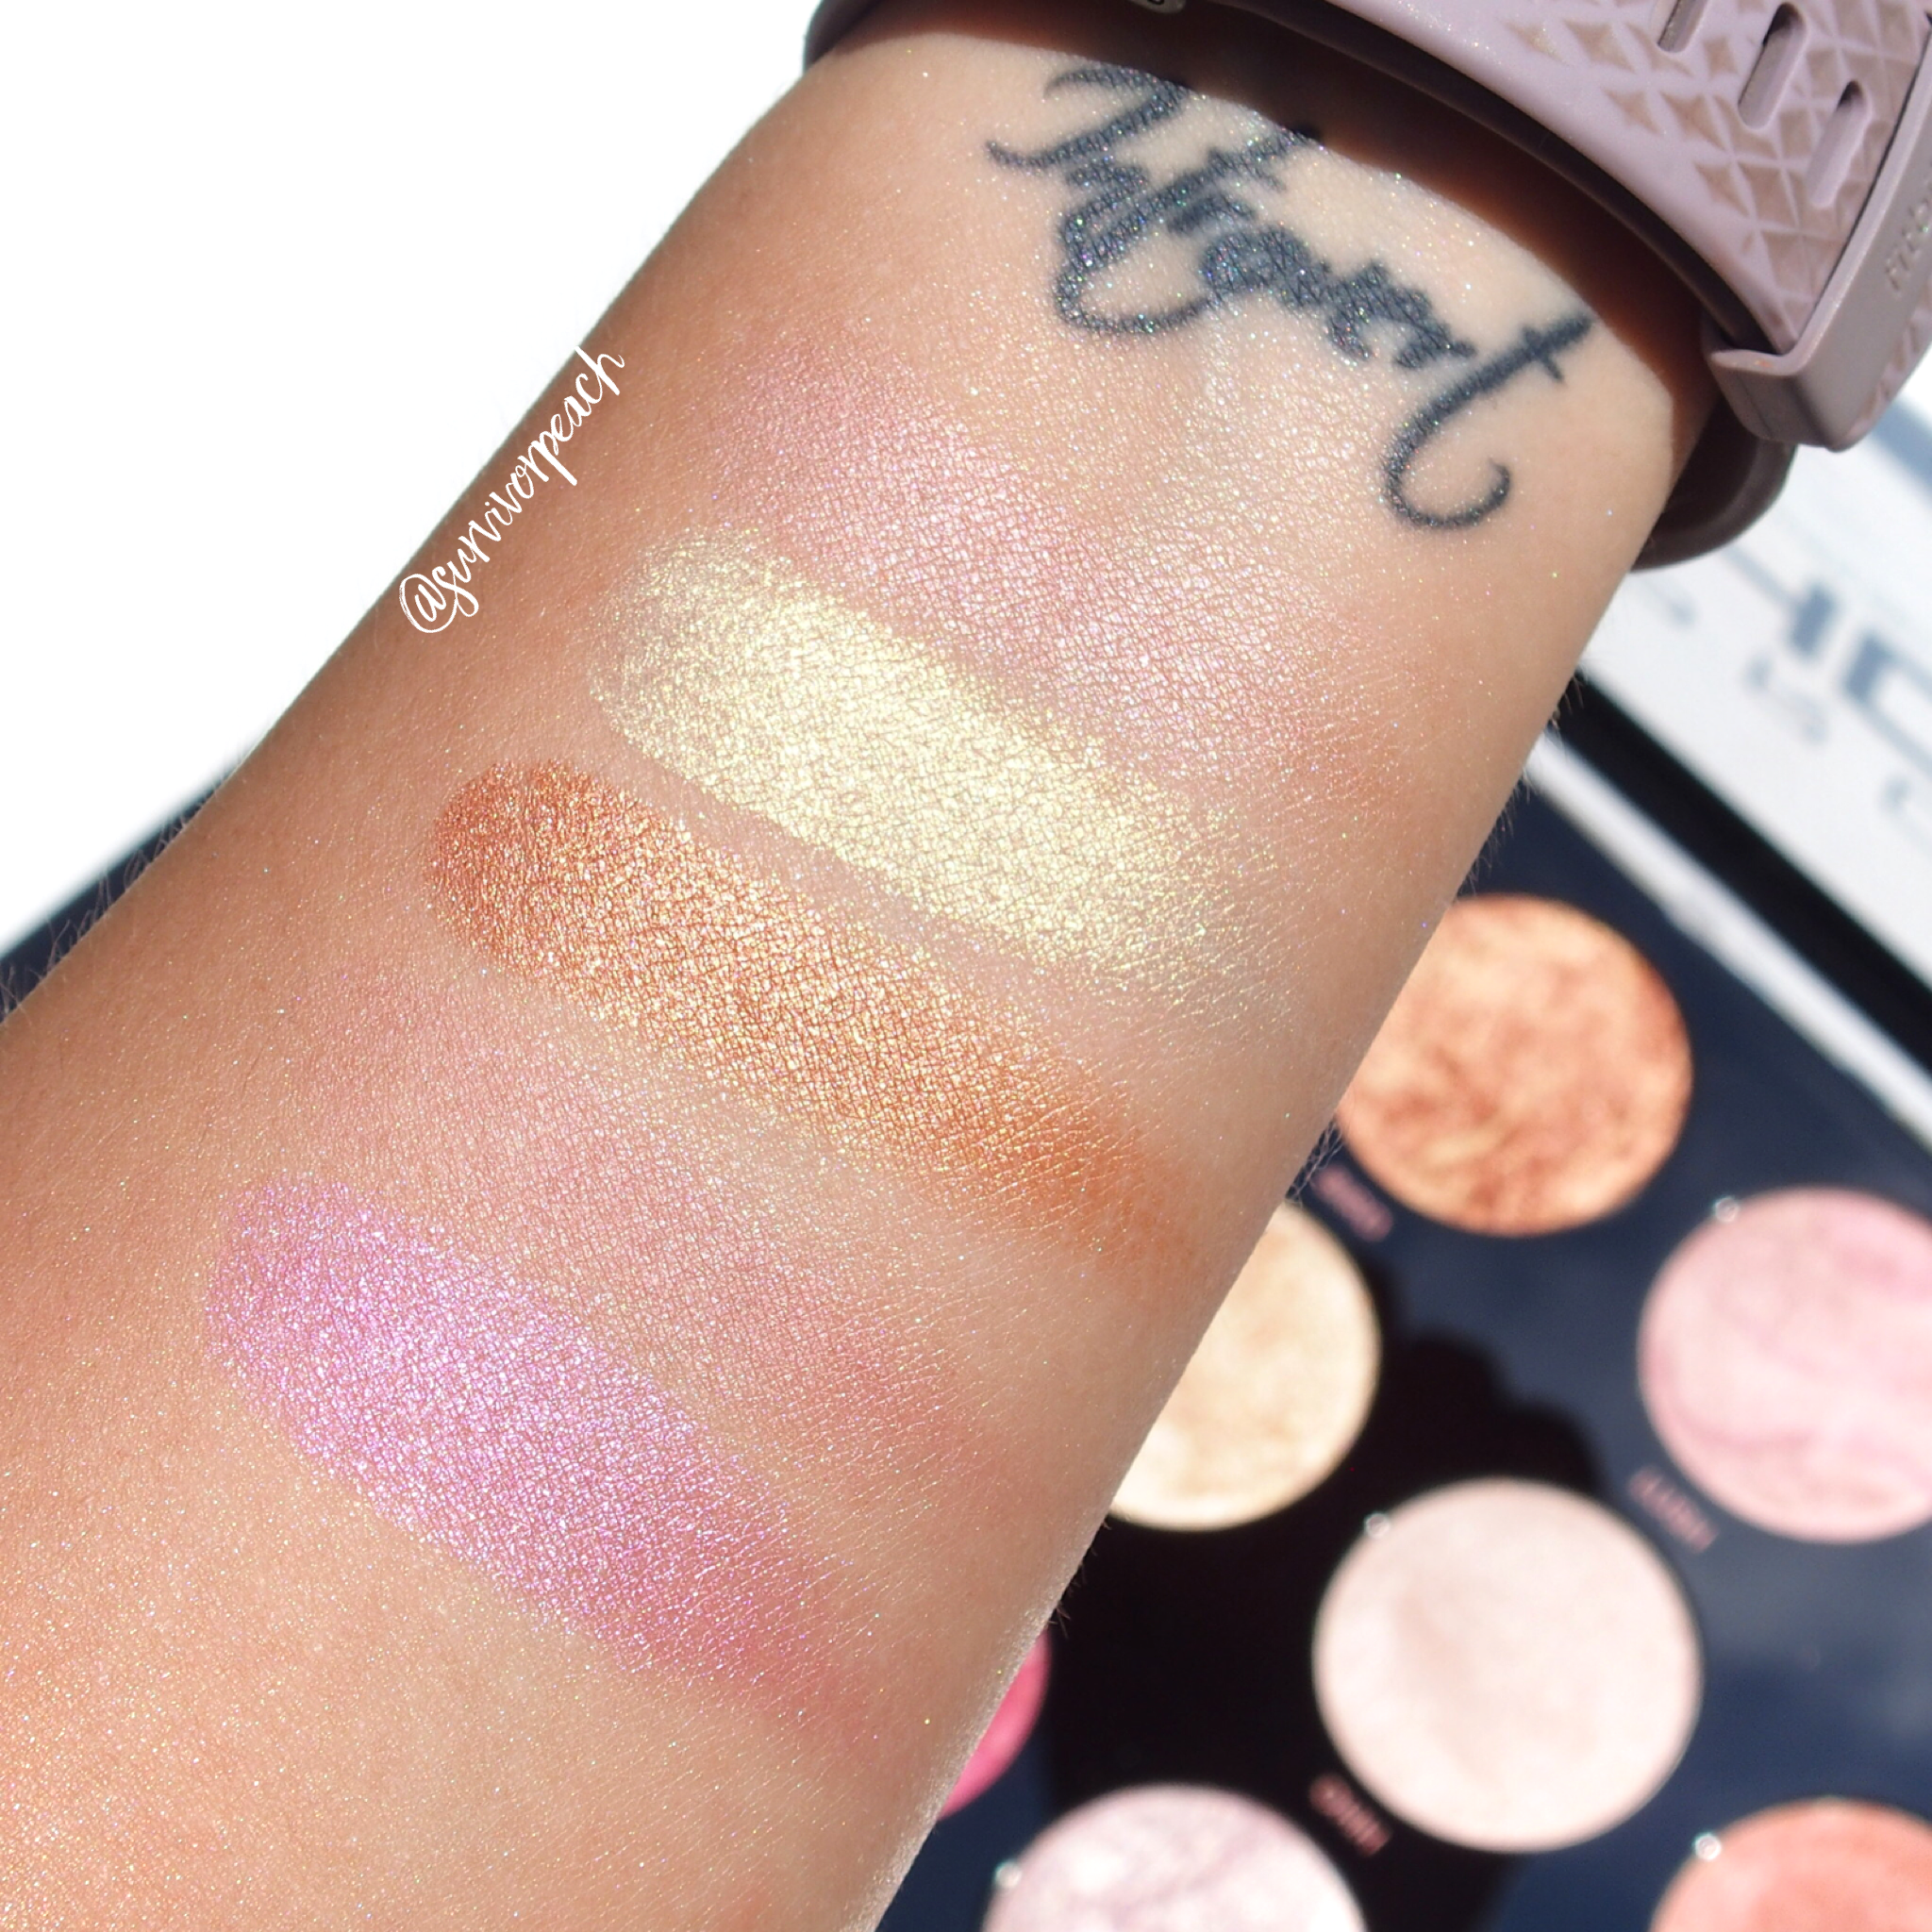 Makeup Revolution Pro HD Amplified Get Baked Palette swatches - Row 1